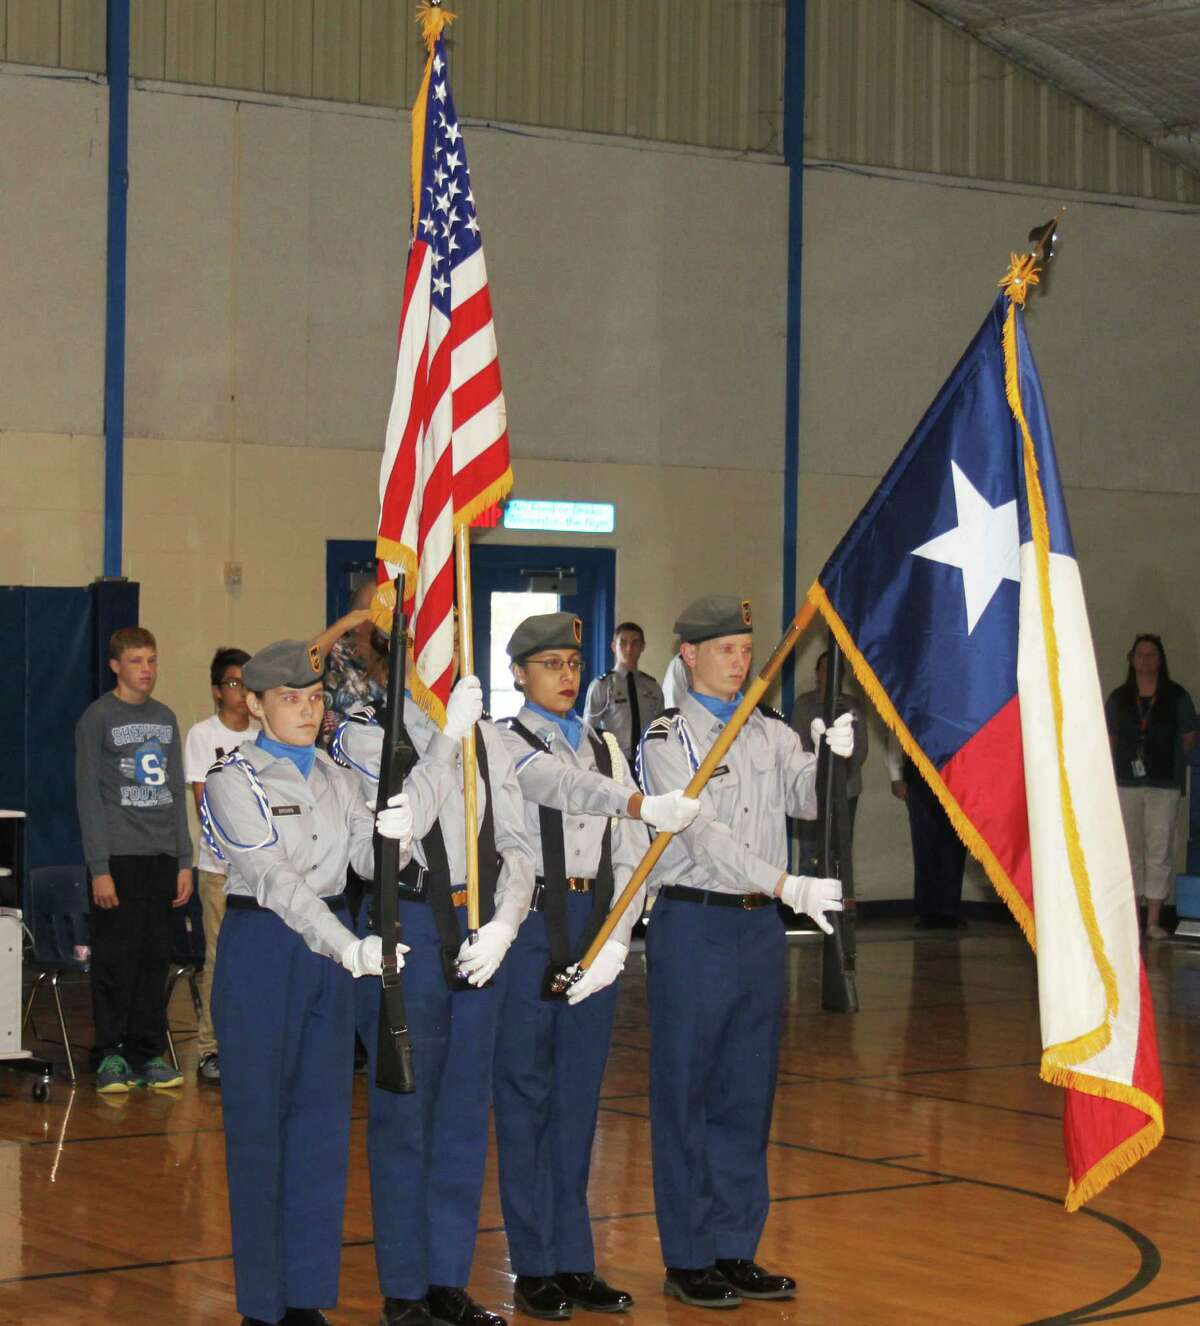 Cadets of Shepherd ISD JROTC present the United States and Texas flags at theShepherd Middle School gymnasiumfor the Veterans Day program.